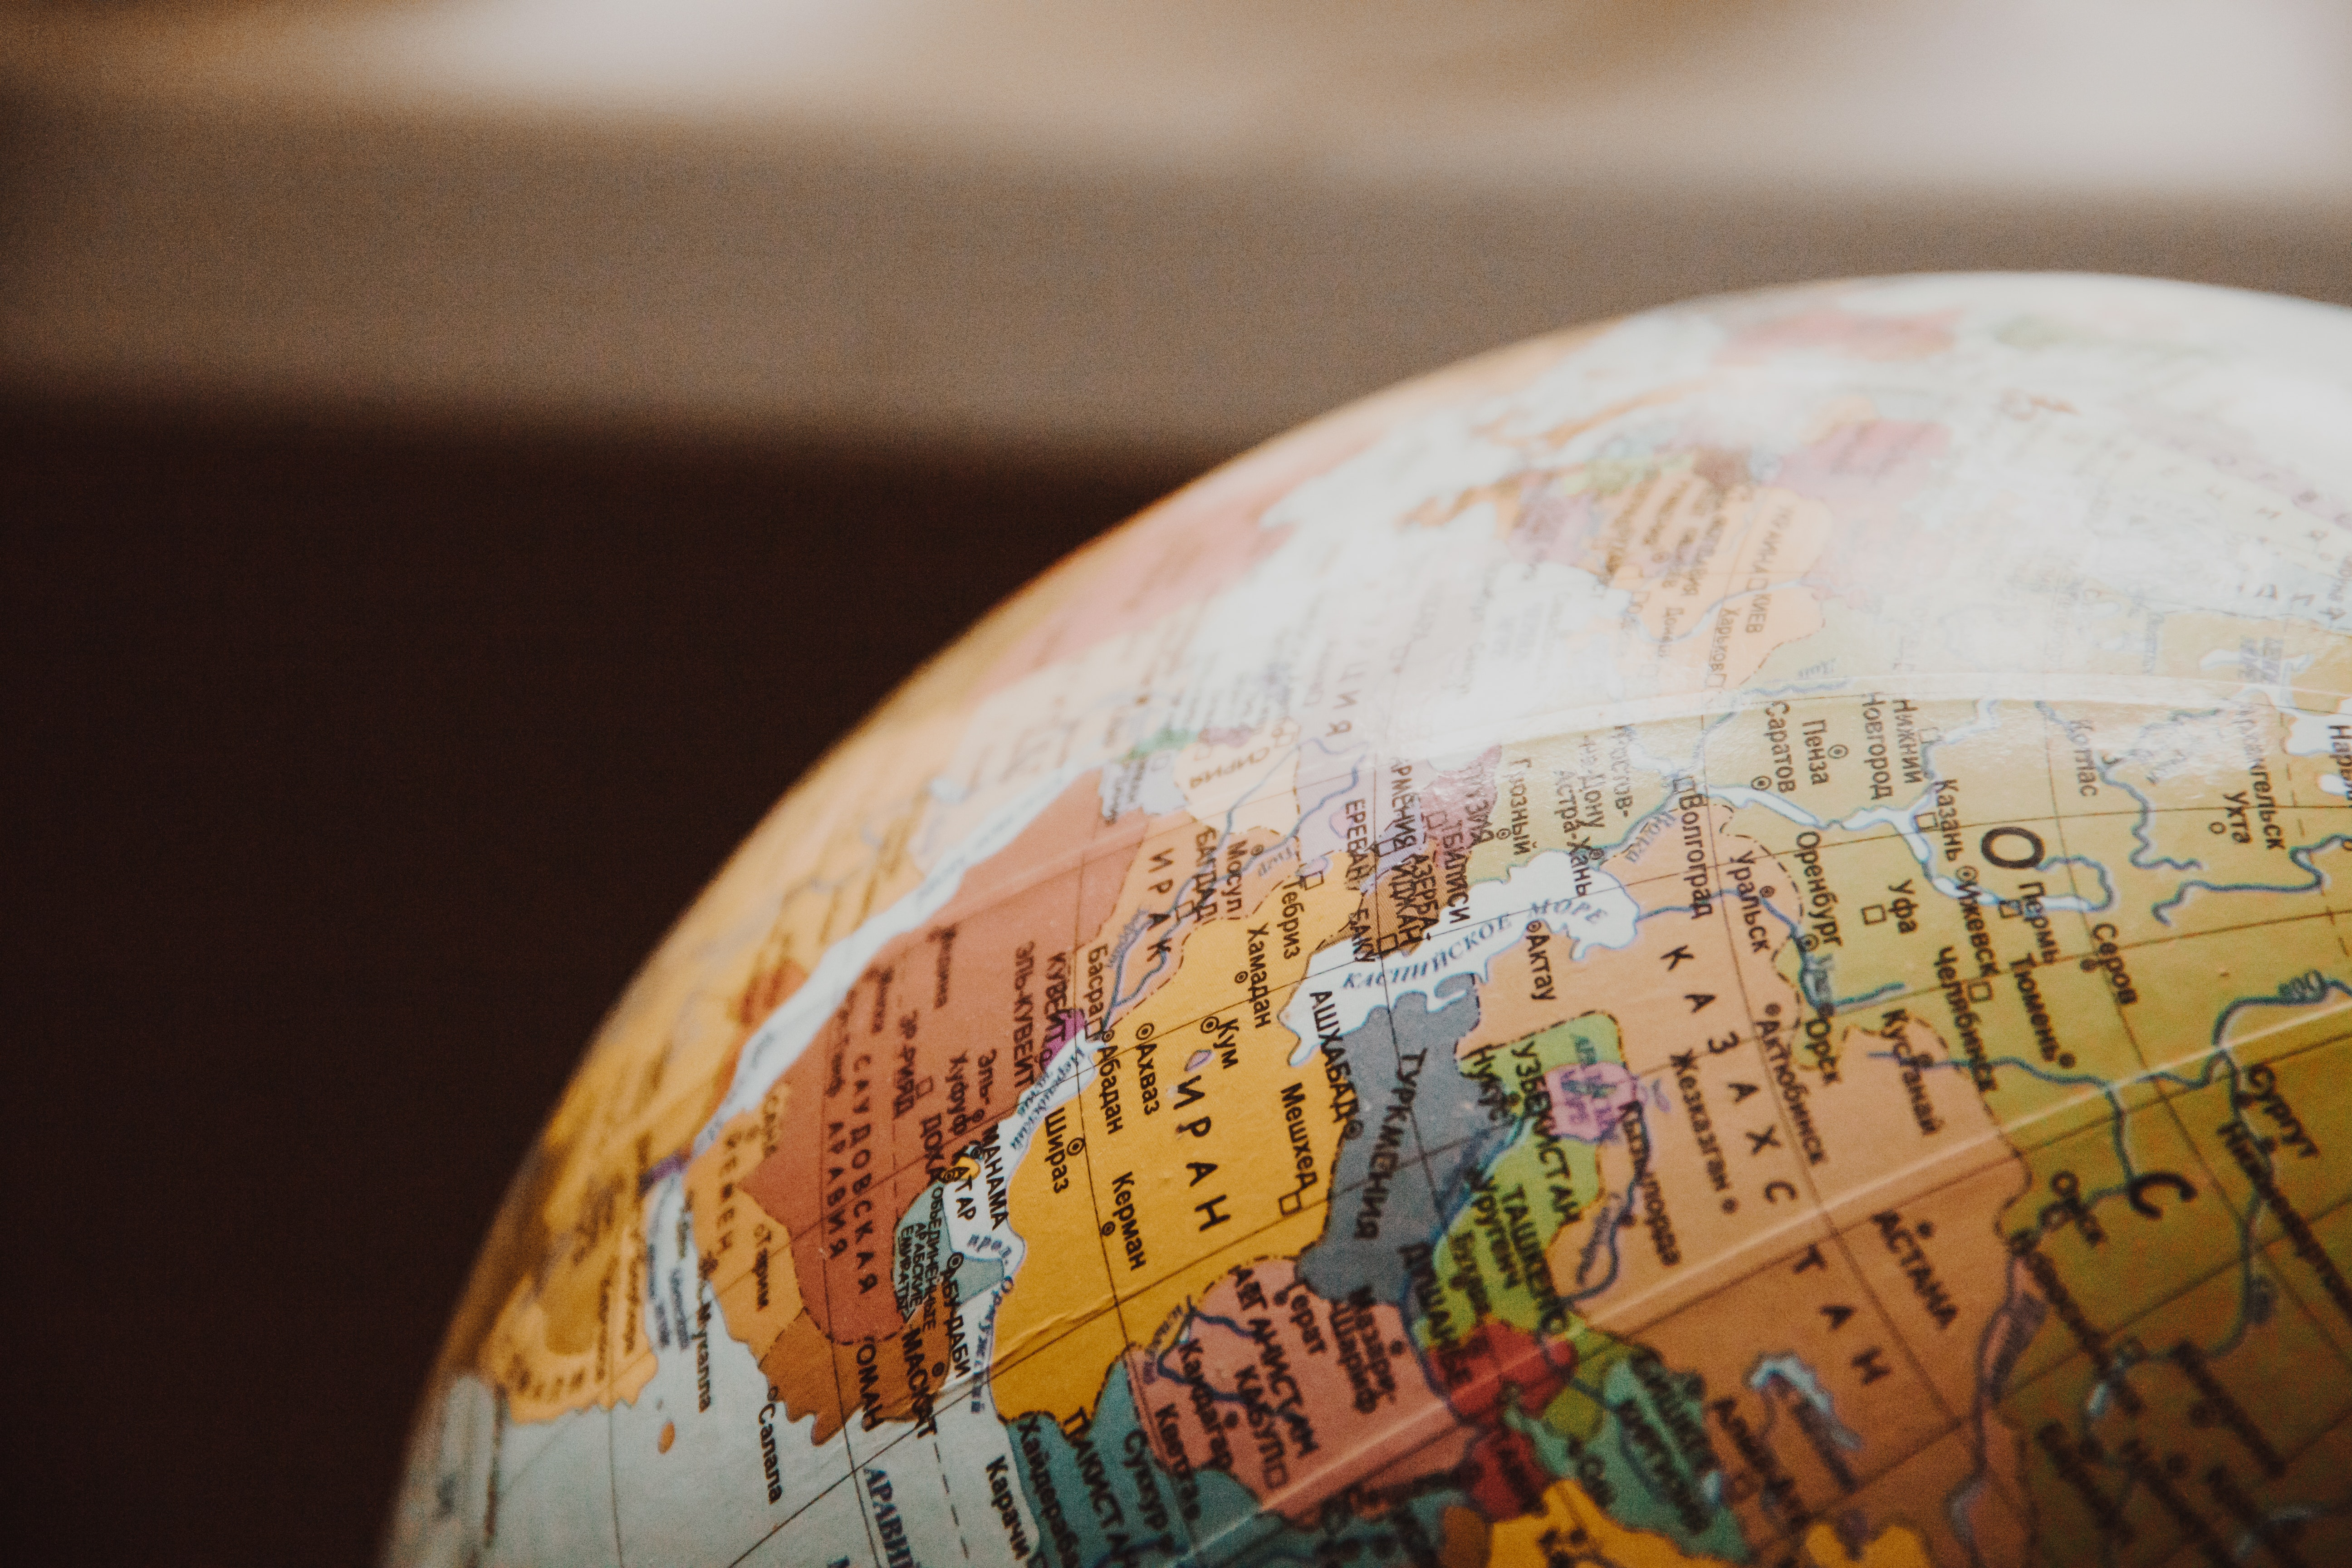 The global identity of a third culture kid